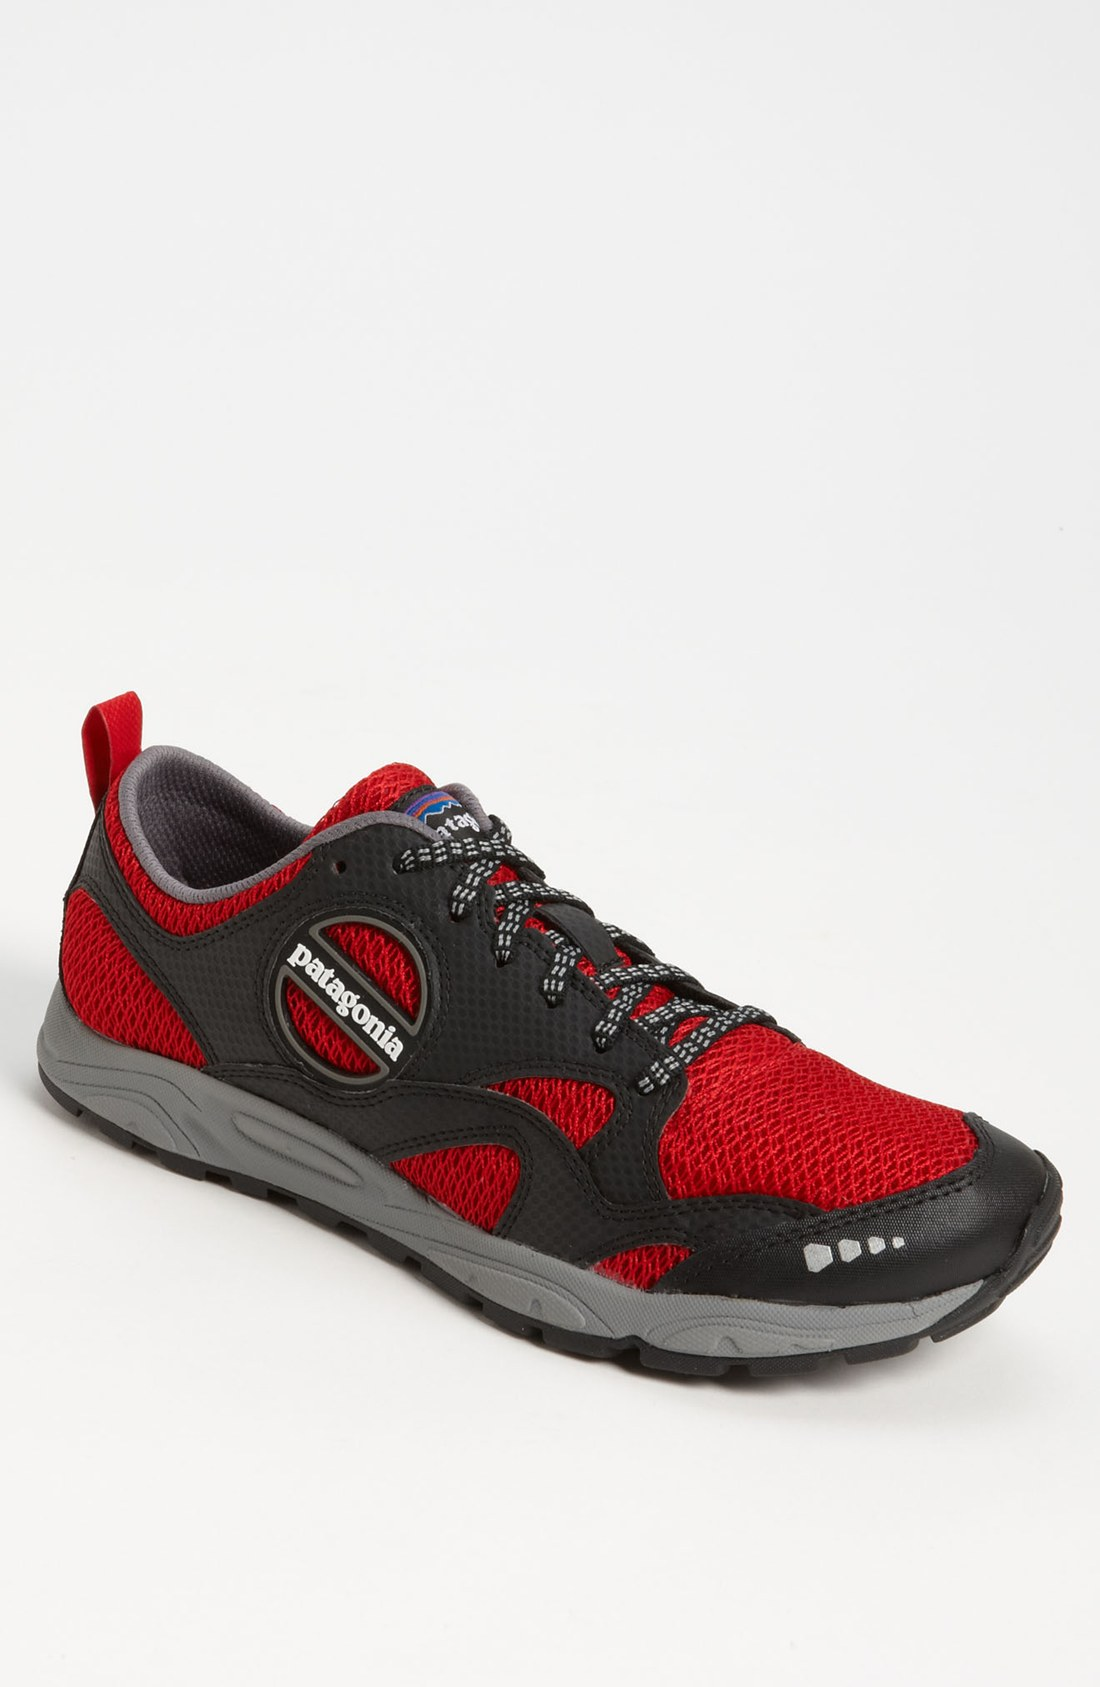 Patagonia Evermore Trail Running Shoes Mens